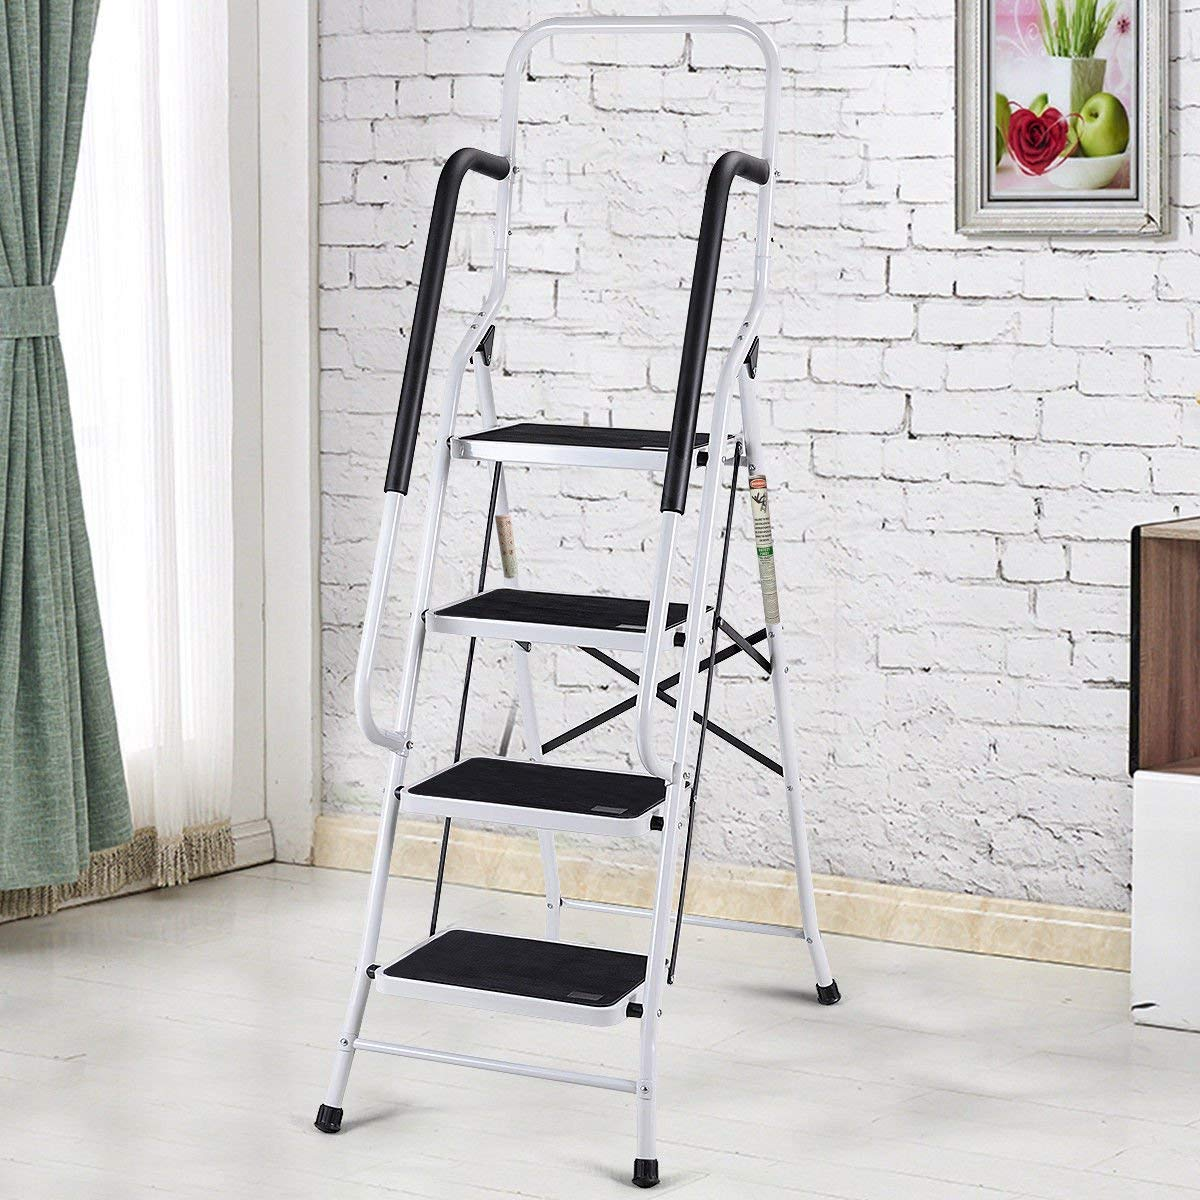 Giantex 2 in 1 Non-Slip Step Ladder Folding Stool w/Handrails and Tool Pouch Caddy (4 Step Ladder) by Giantex (Image #2)